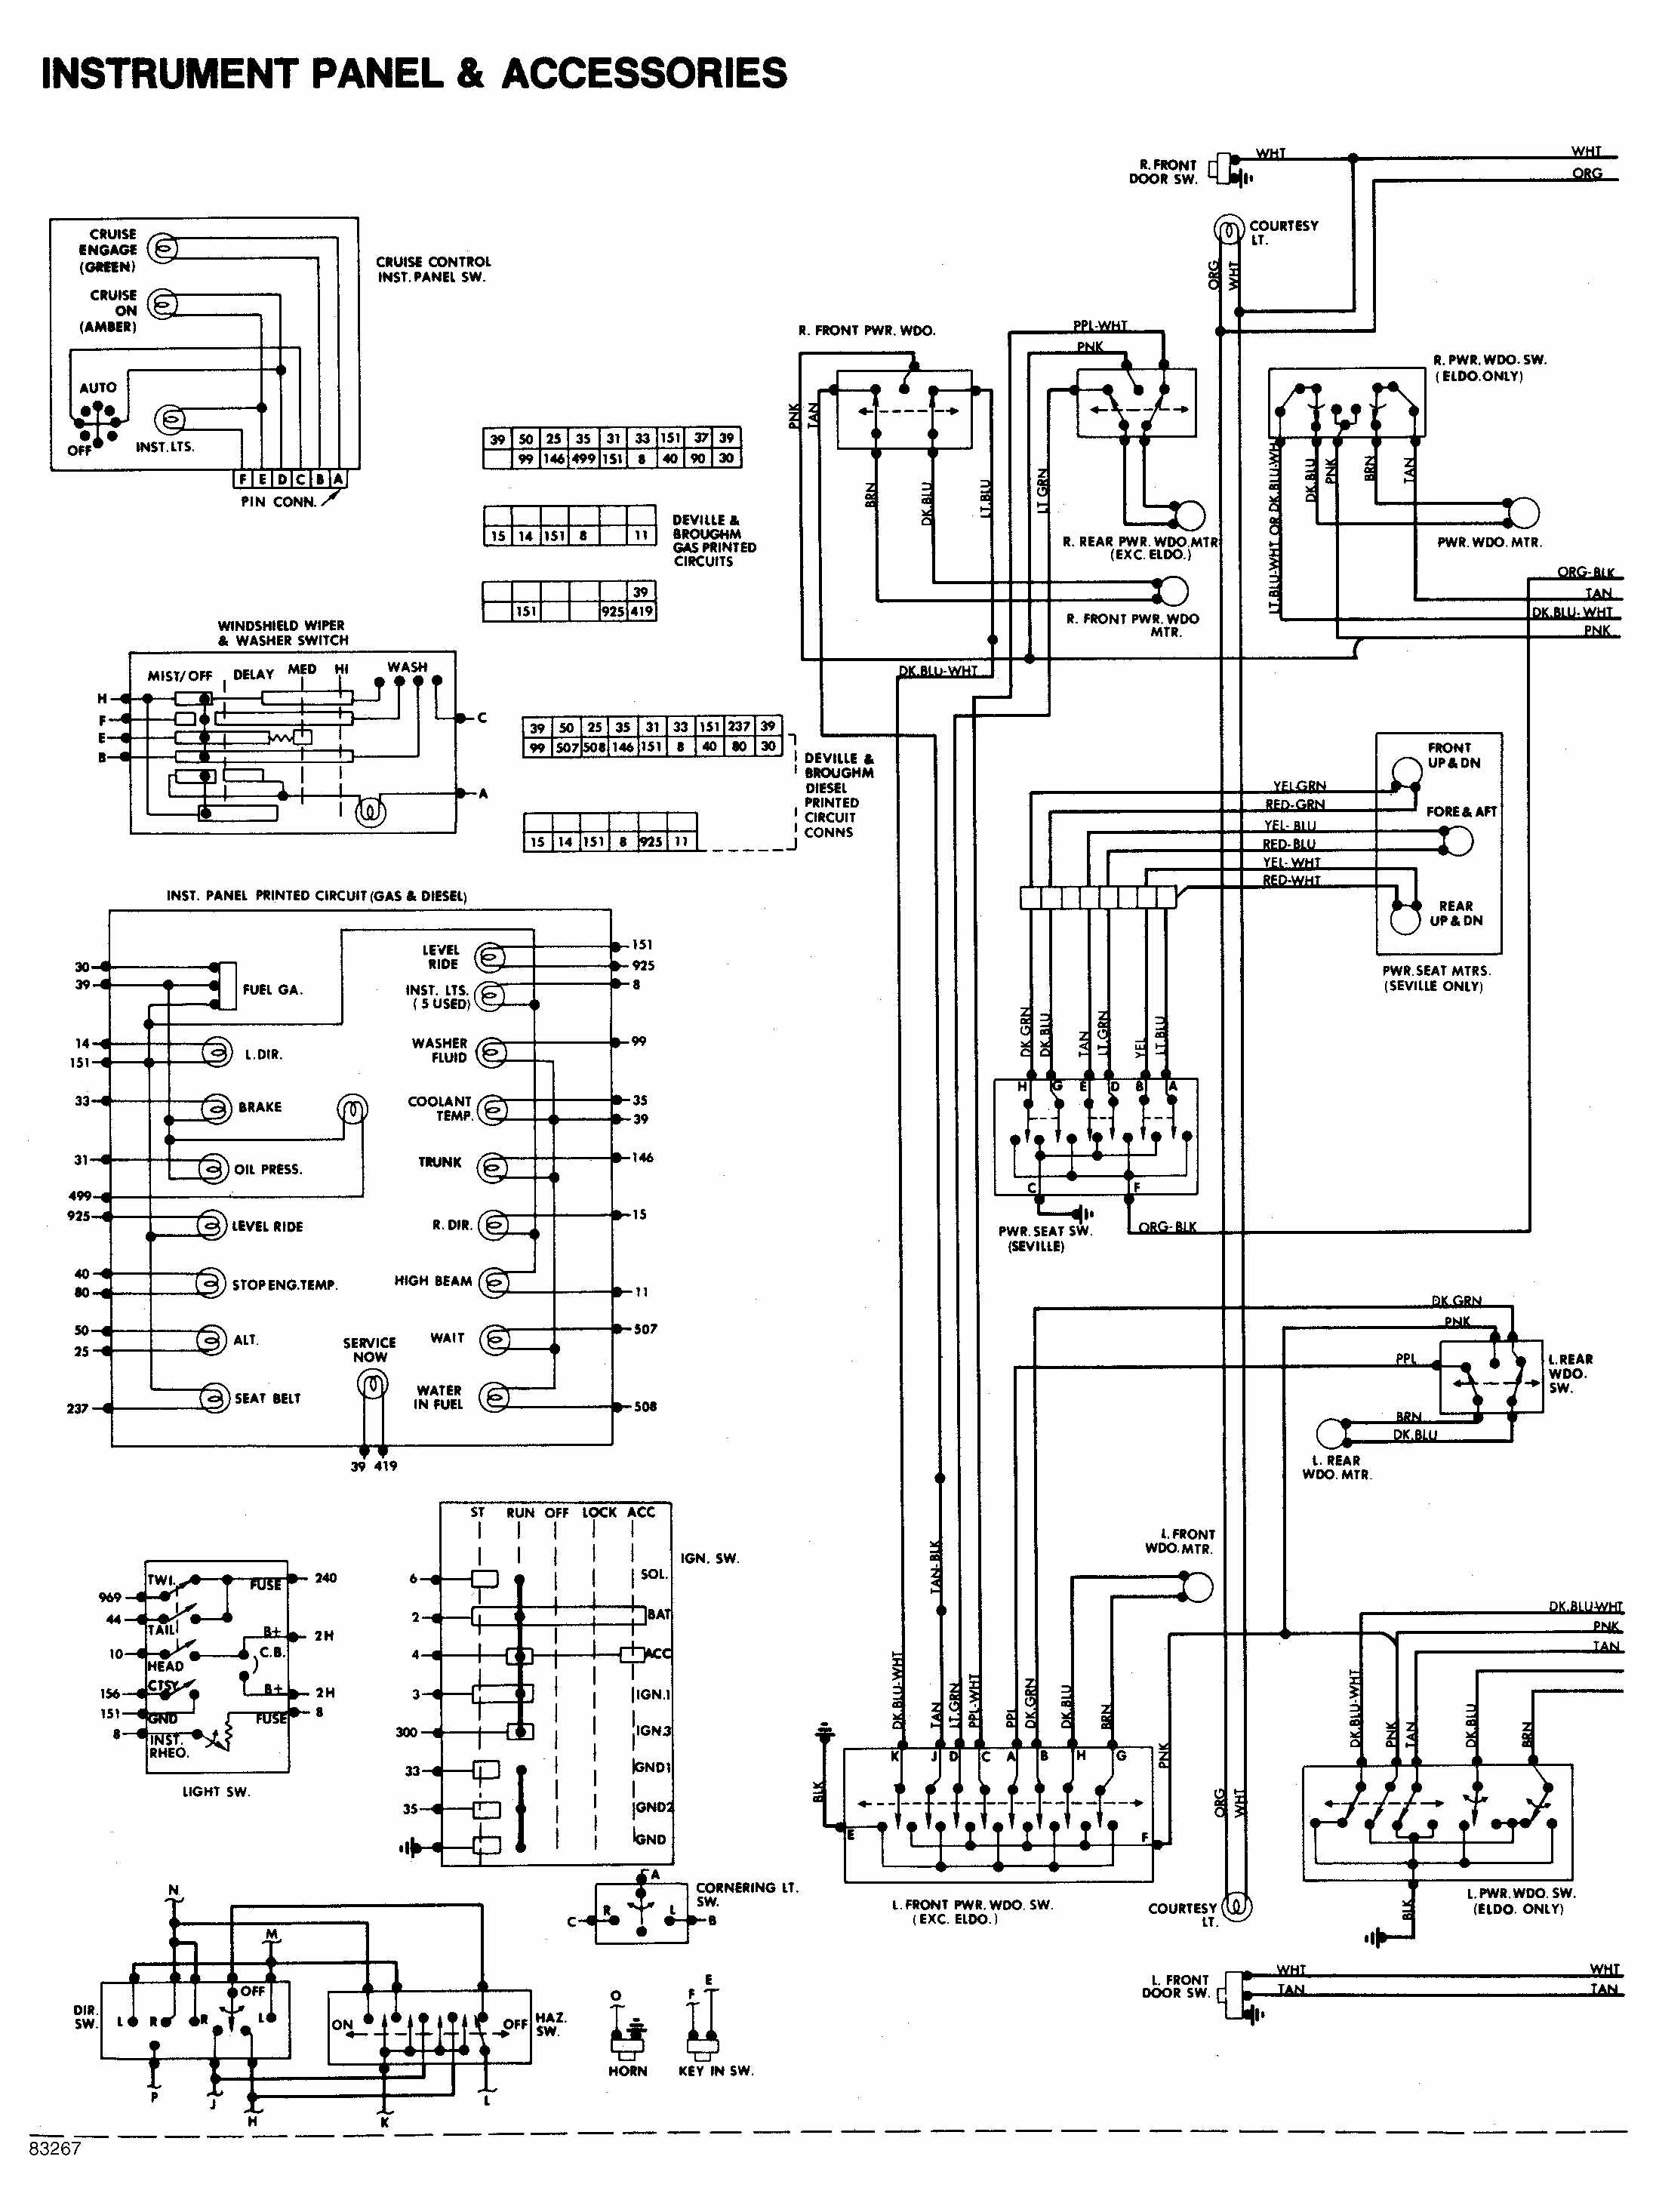 1985 cadillac fleetwood fuse box diagram